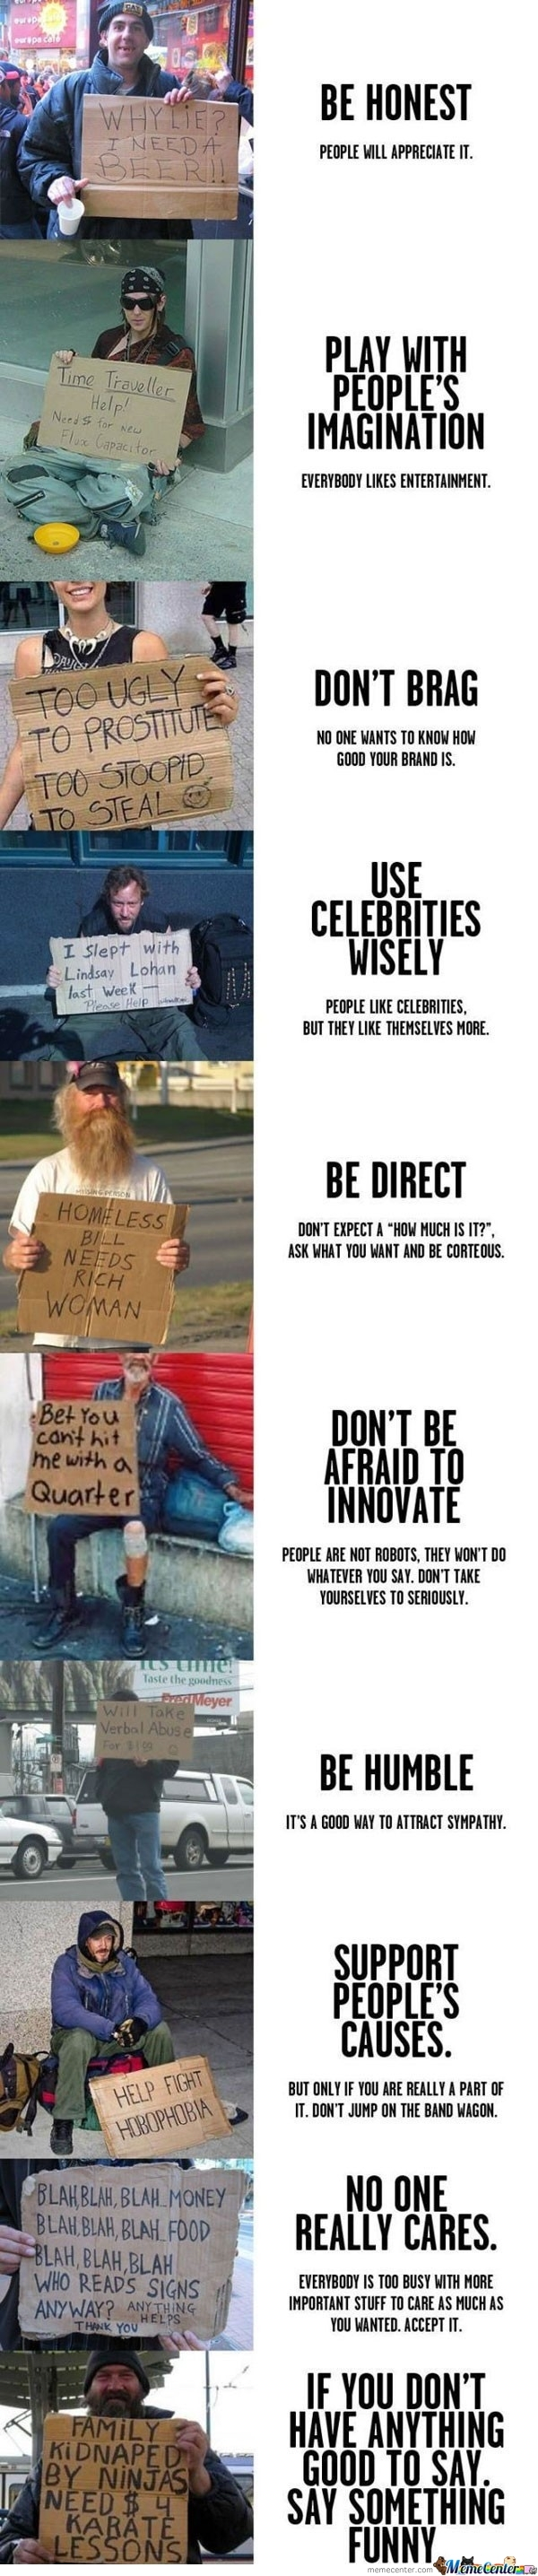 Guide To Getting Money As A Homeless Person